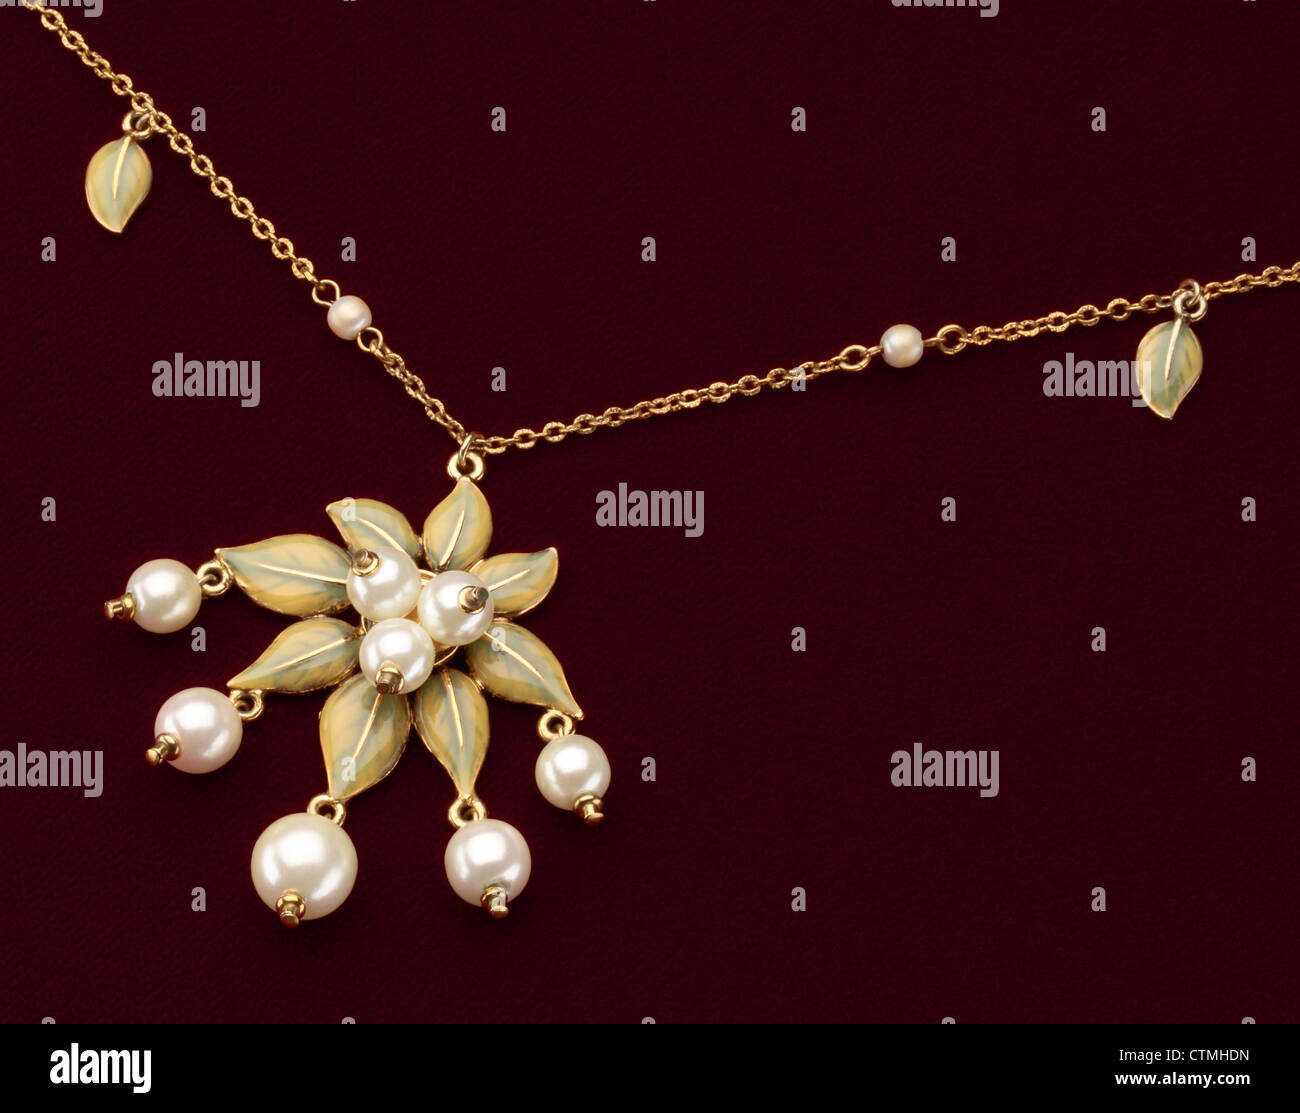 Costume jewelry. A close-up view of a gold necklace with flower and pearls beads. - Stock Image